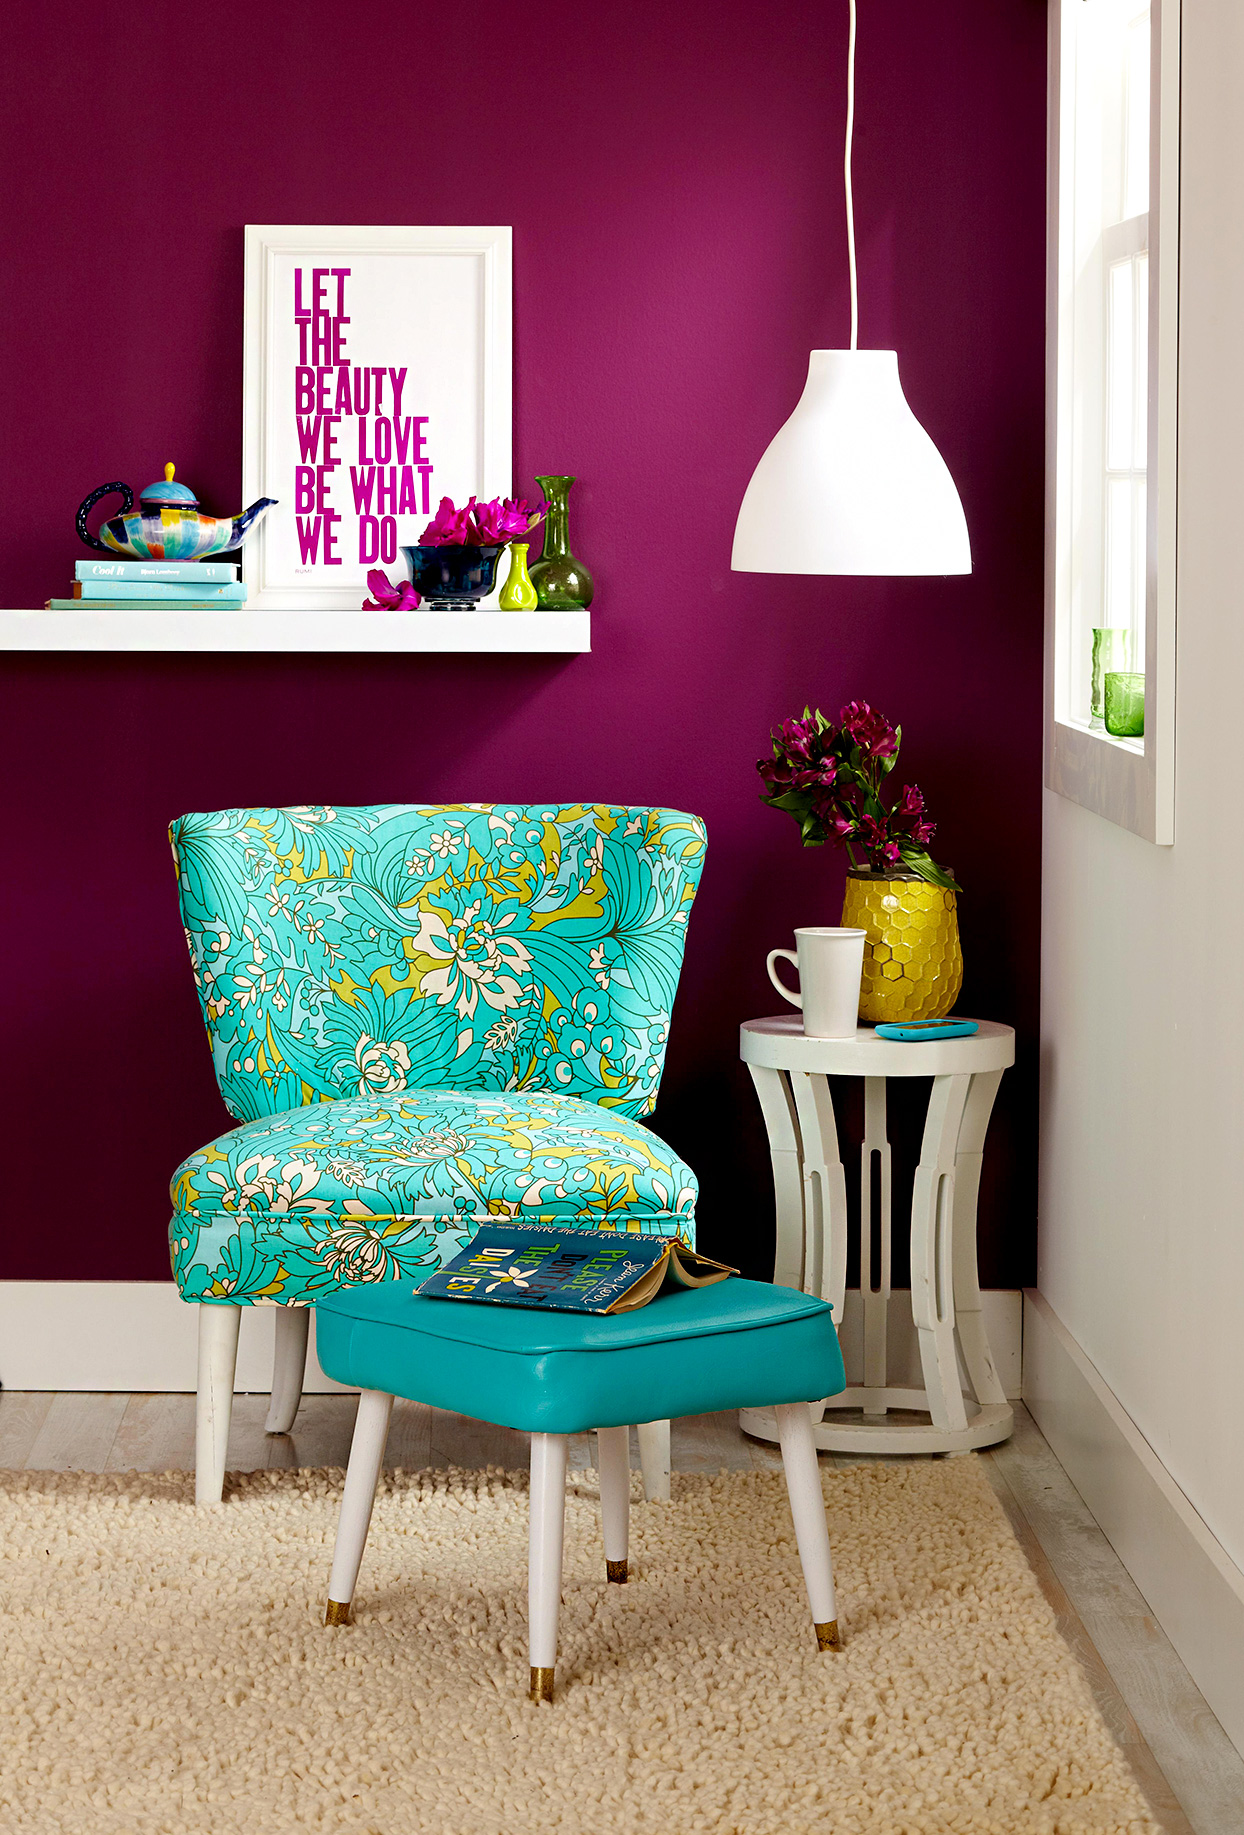 Corner space with upholstered chair